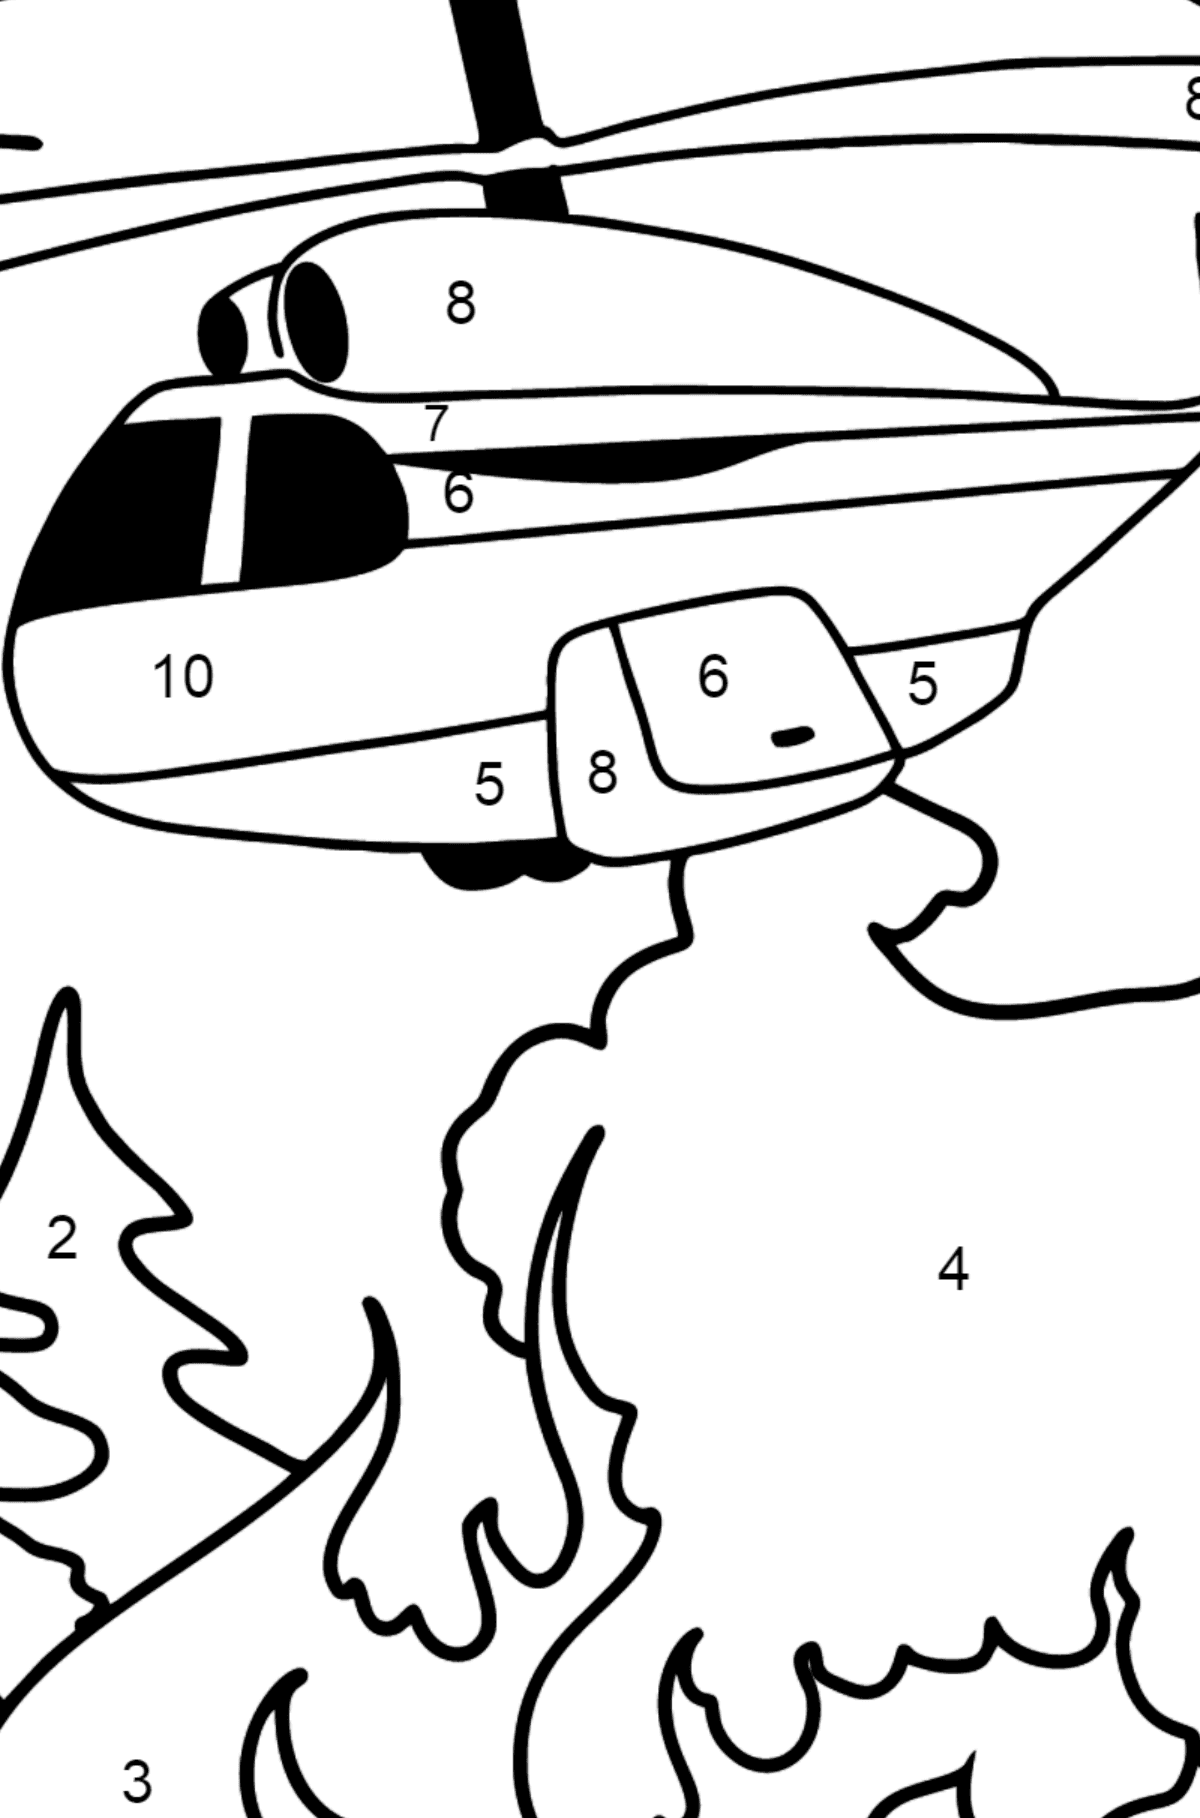 Helicopter Extinguishing Fire coloring page - Coloring by Numbers for Kids